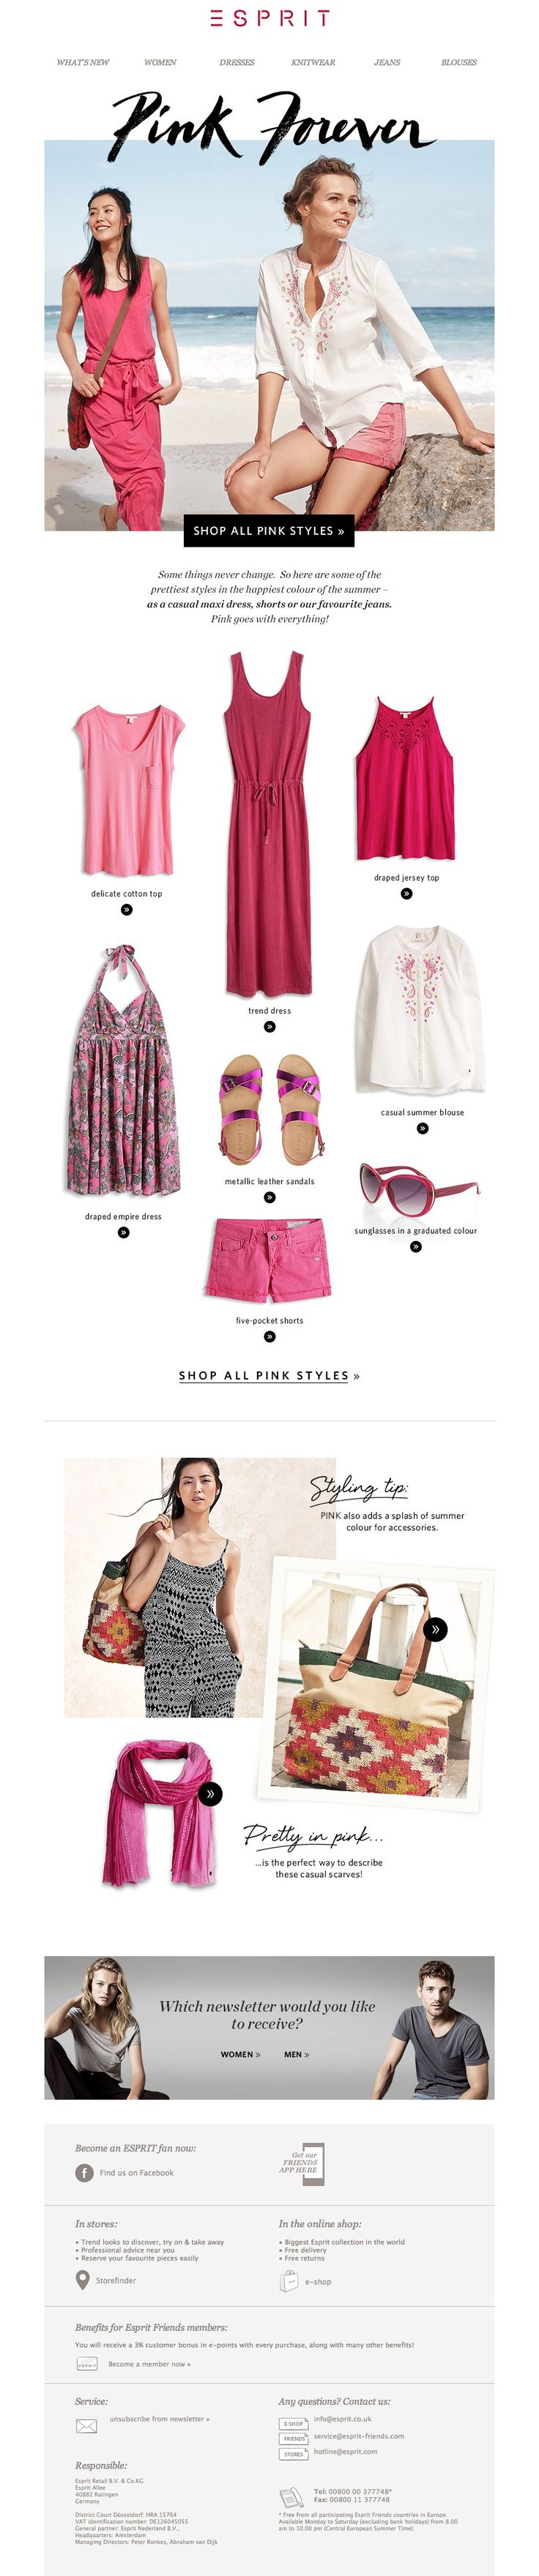 #newlsetter Esprit 06.2014 Summer pink – good mood styles!